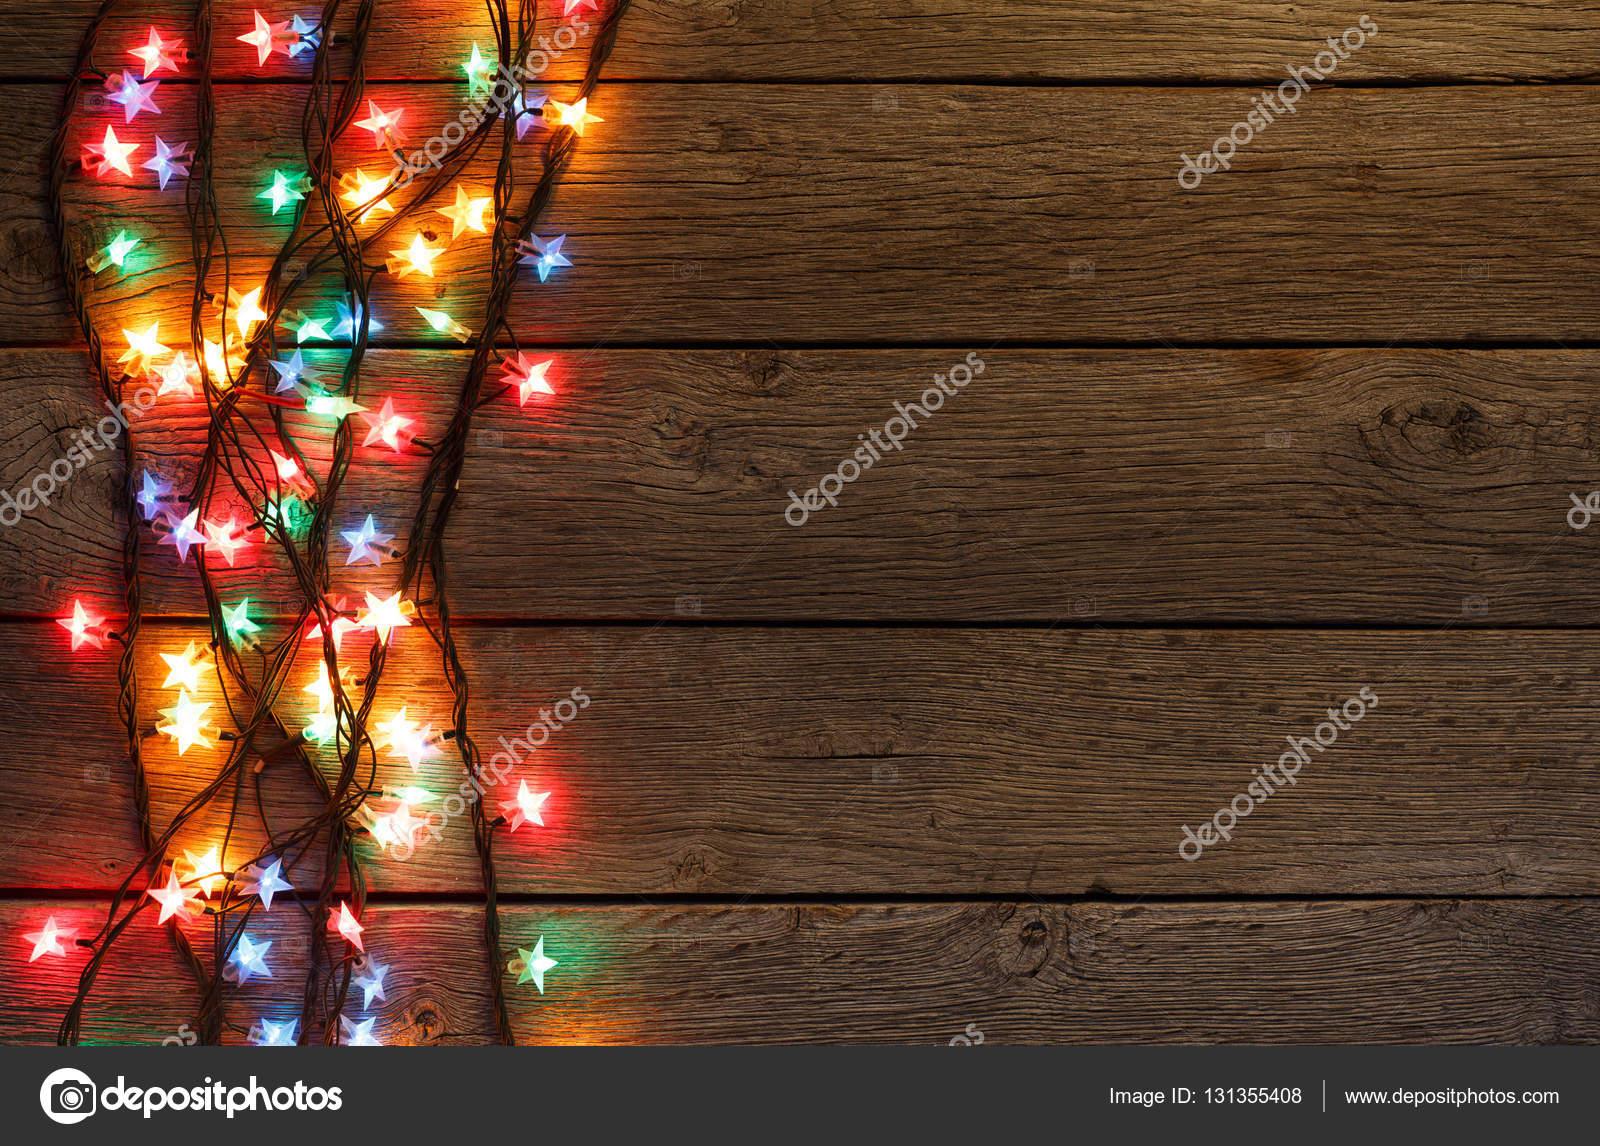 Christmas Lights Background Holiday Shiny Garland Border Top View On Light Brown Wooden Planks Surface Xmas Tree Decorations Winter Holidays Illumination